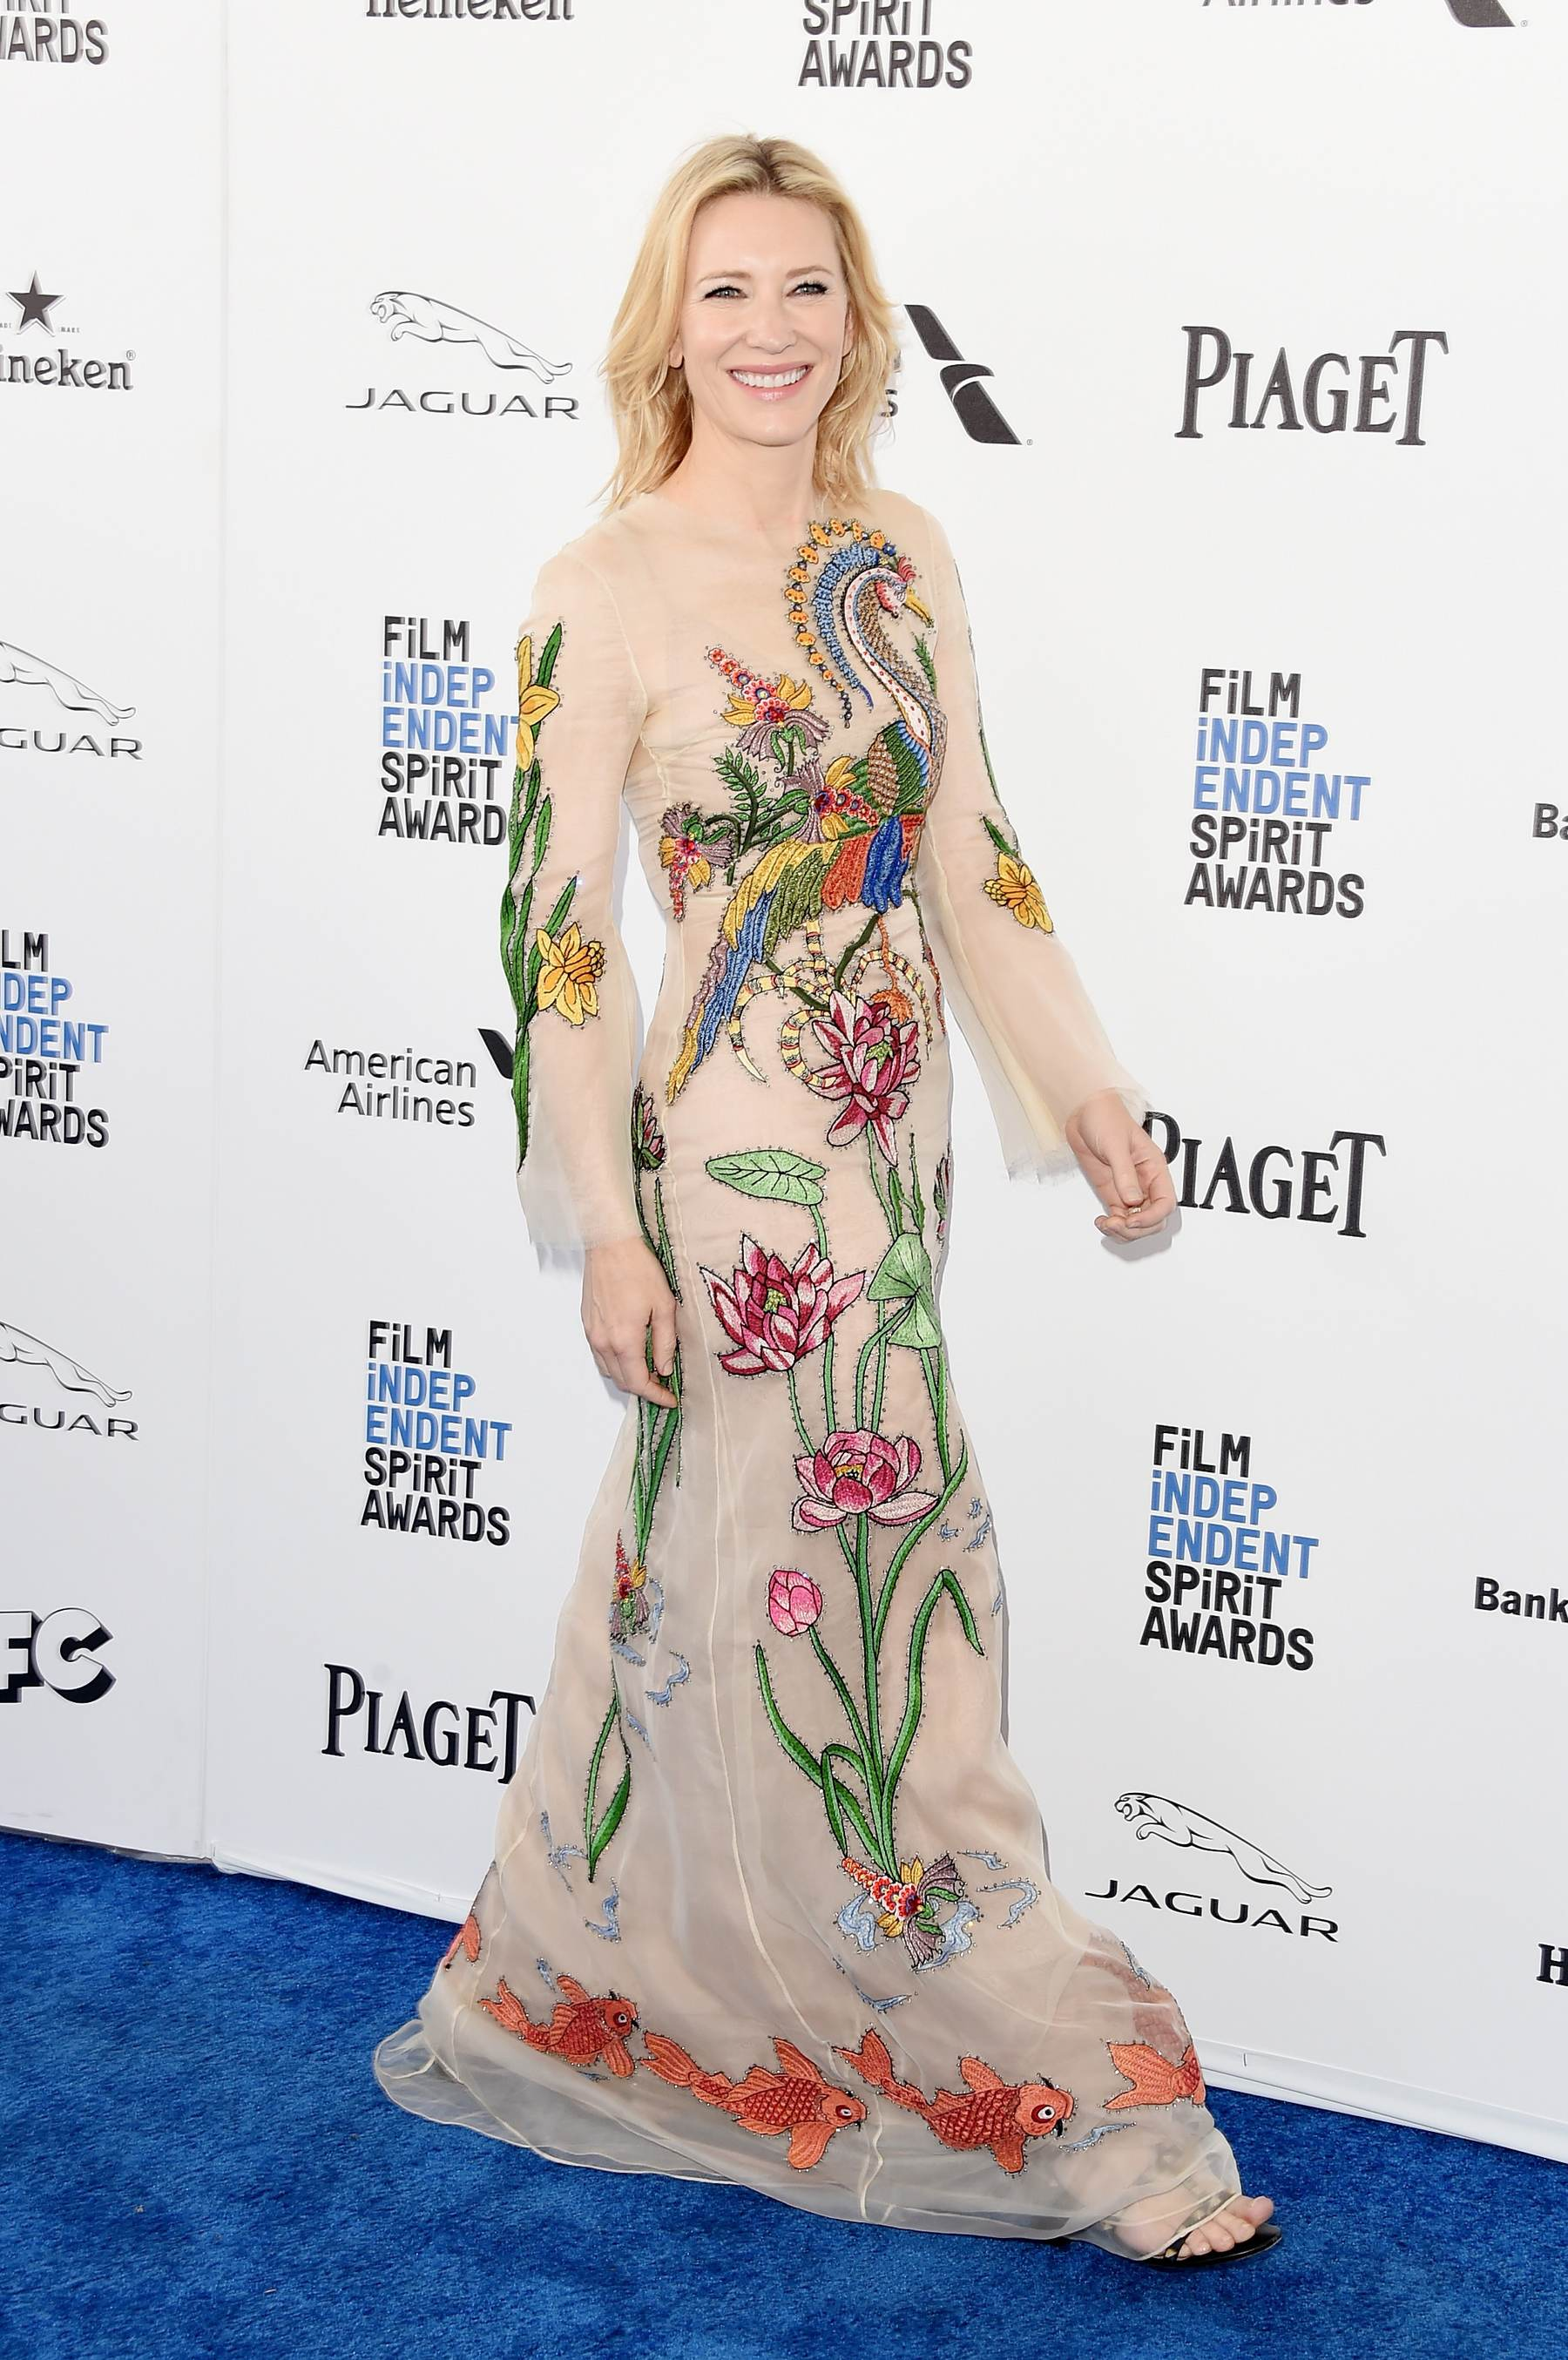 Cate Blanchett at Film Independent Spirit Award-2